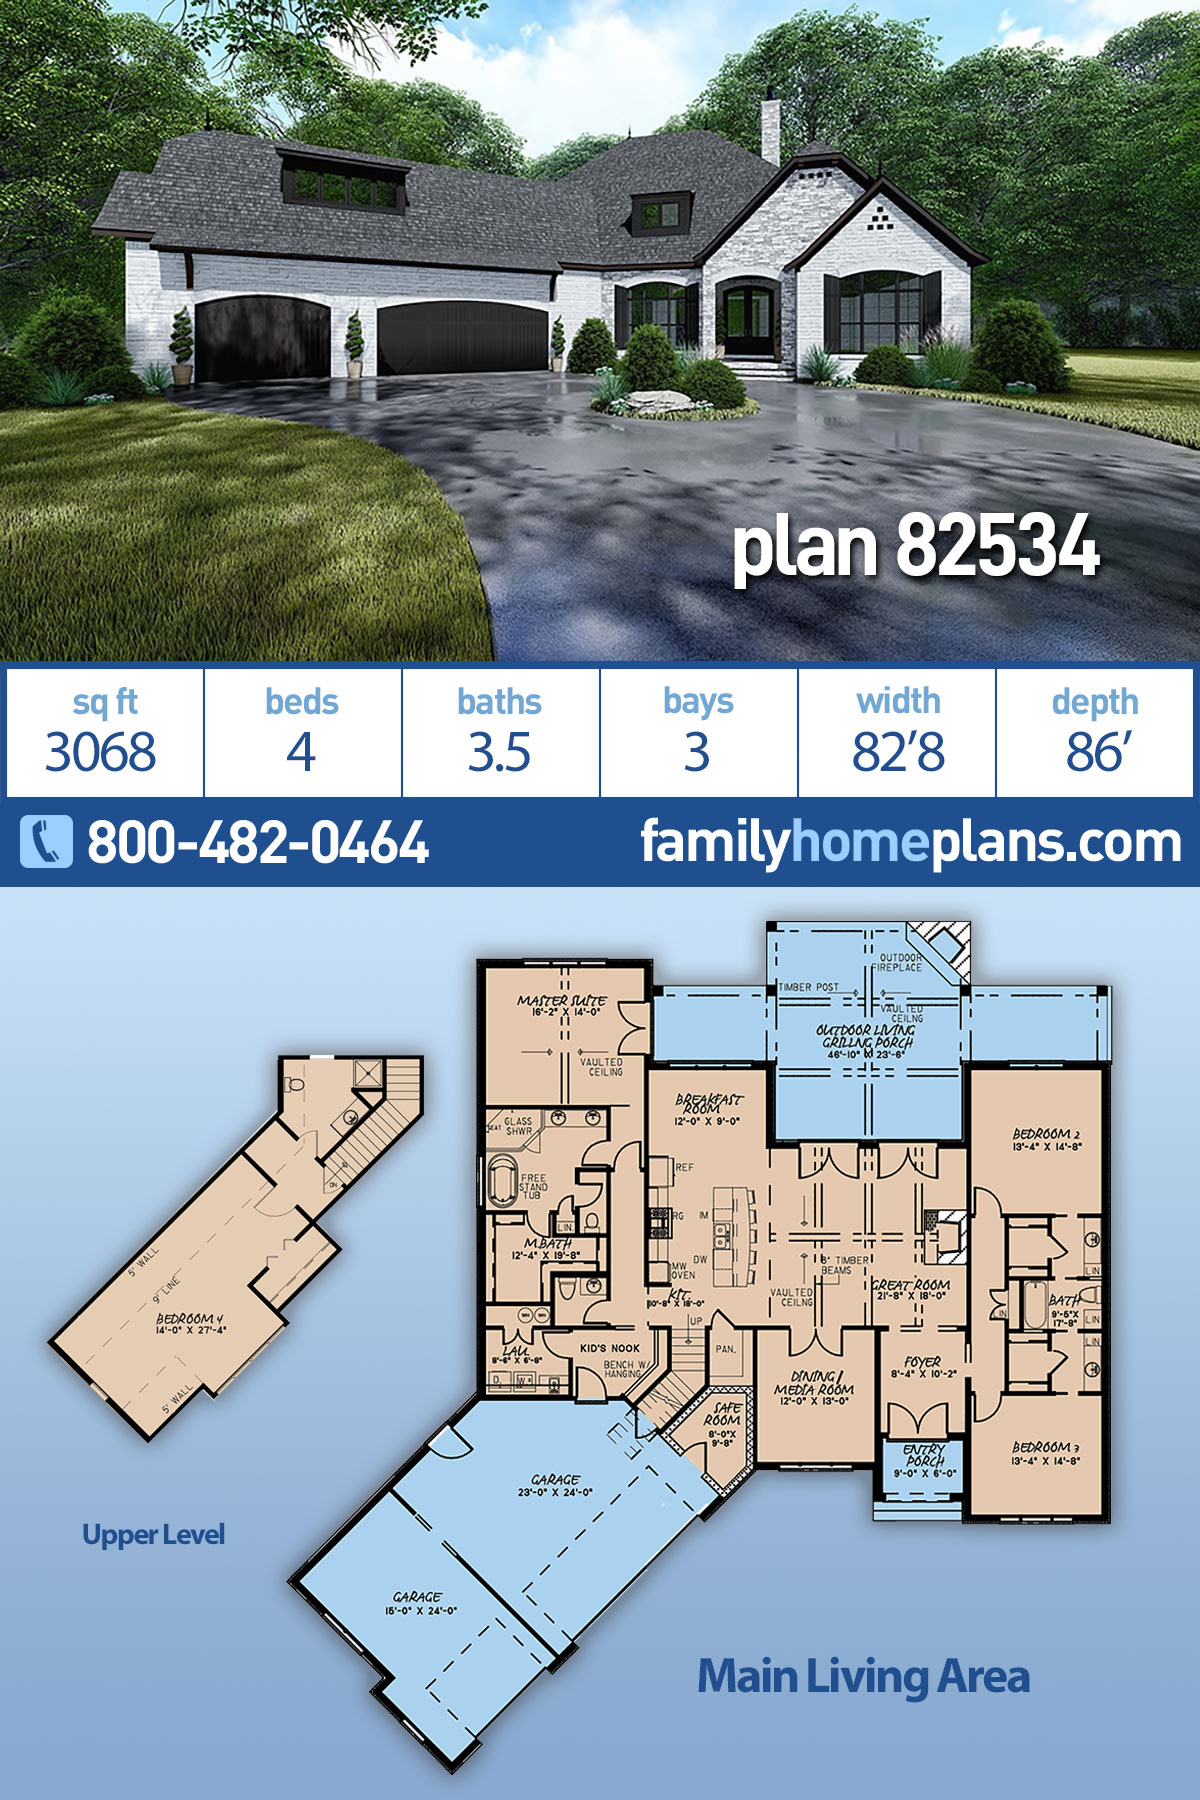 Bungalow, Craftsman, European, French Country House Plan 82534 with 4 Beds, 4 Baths, 3 Car Garage